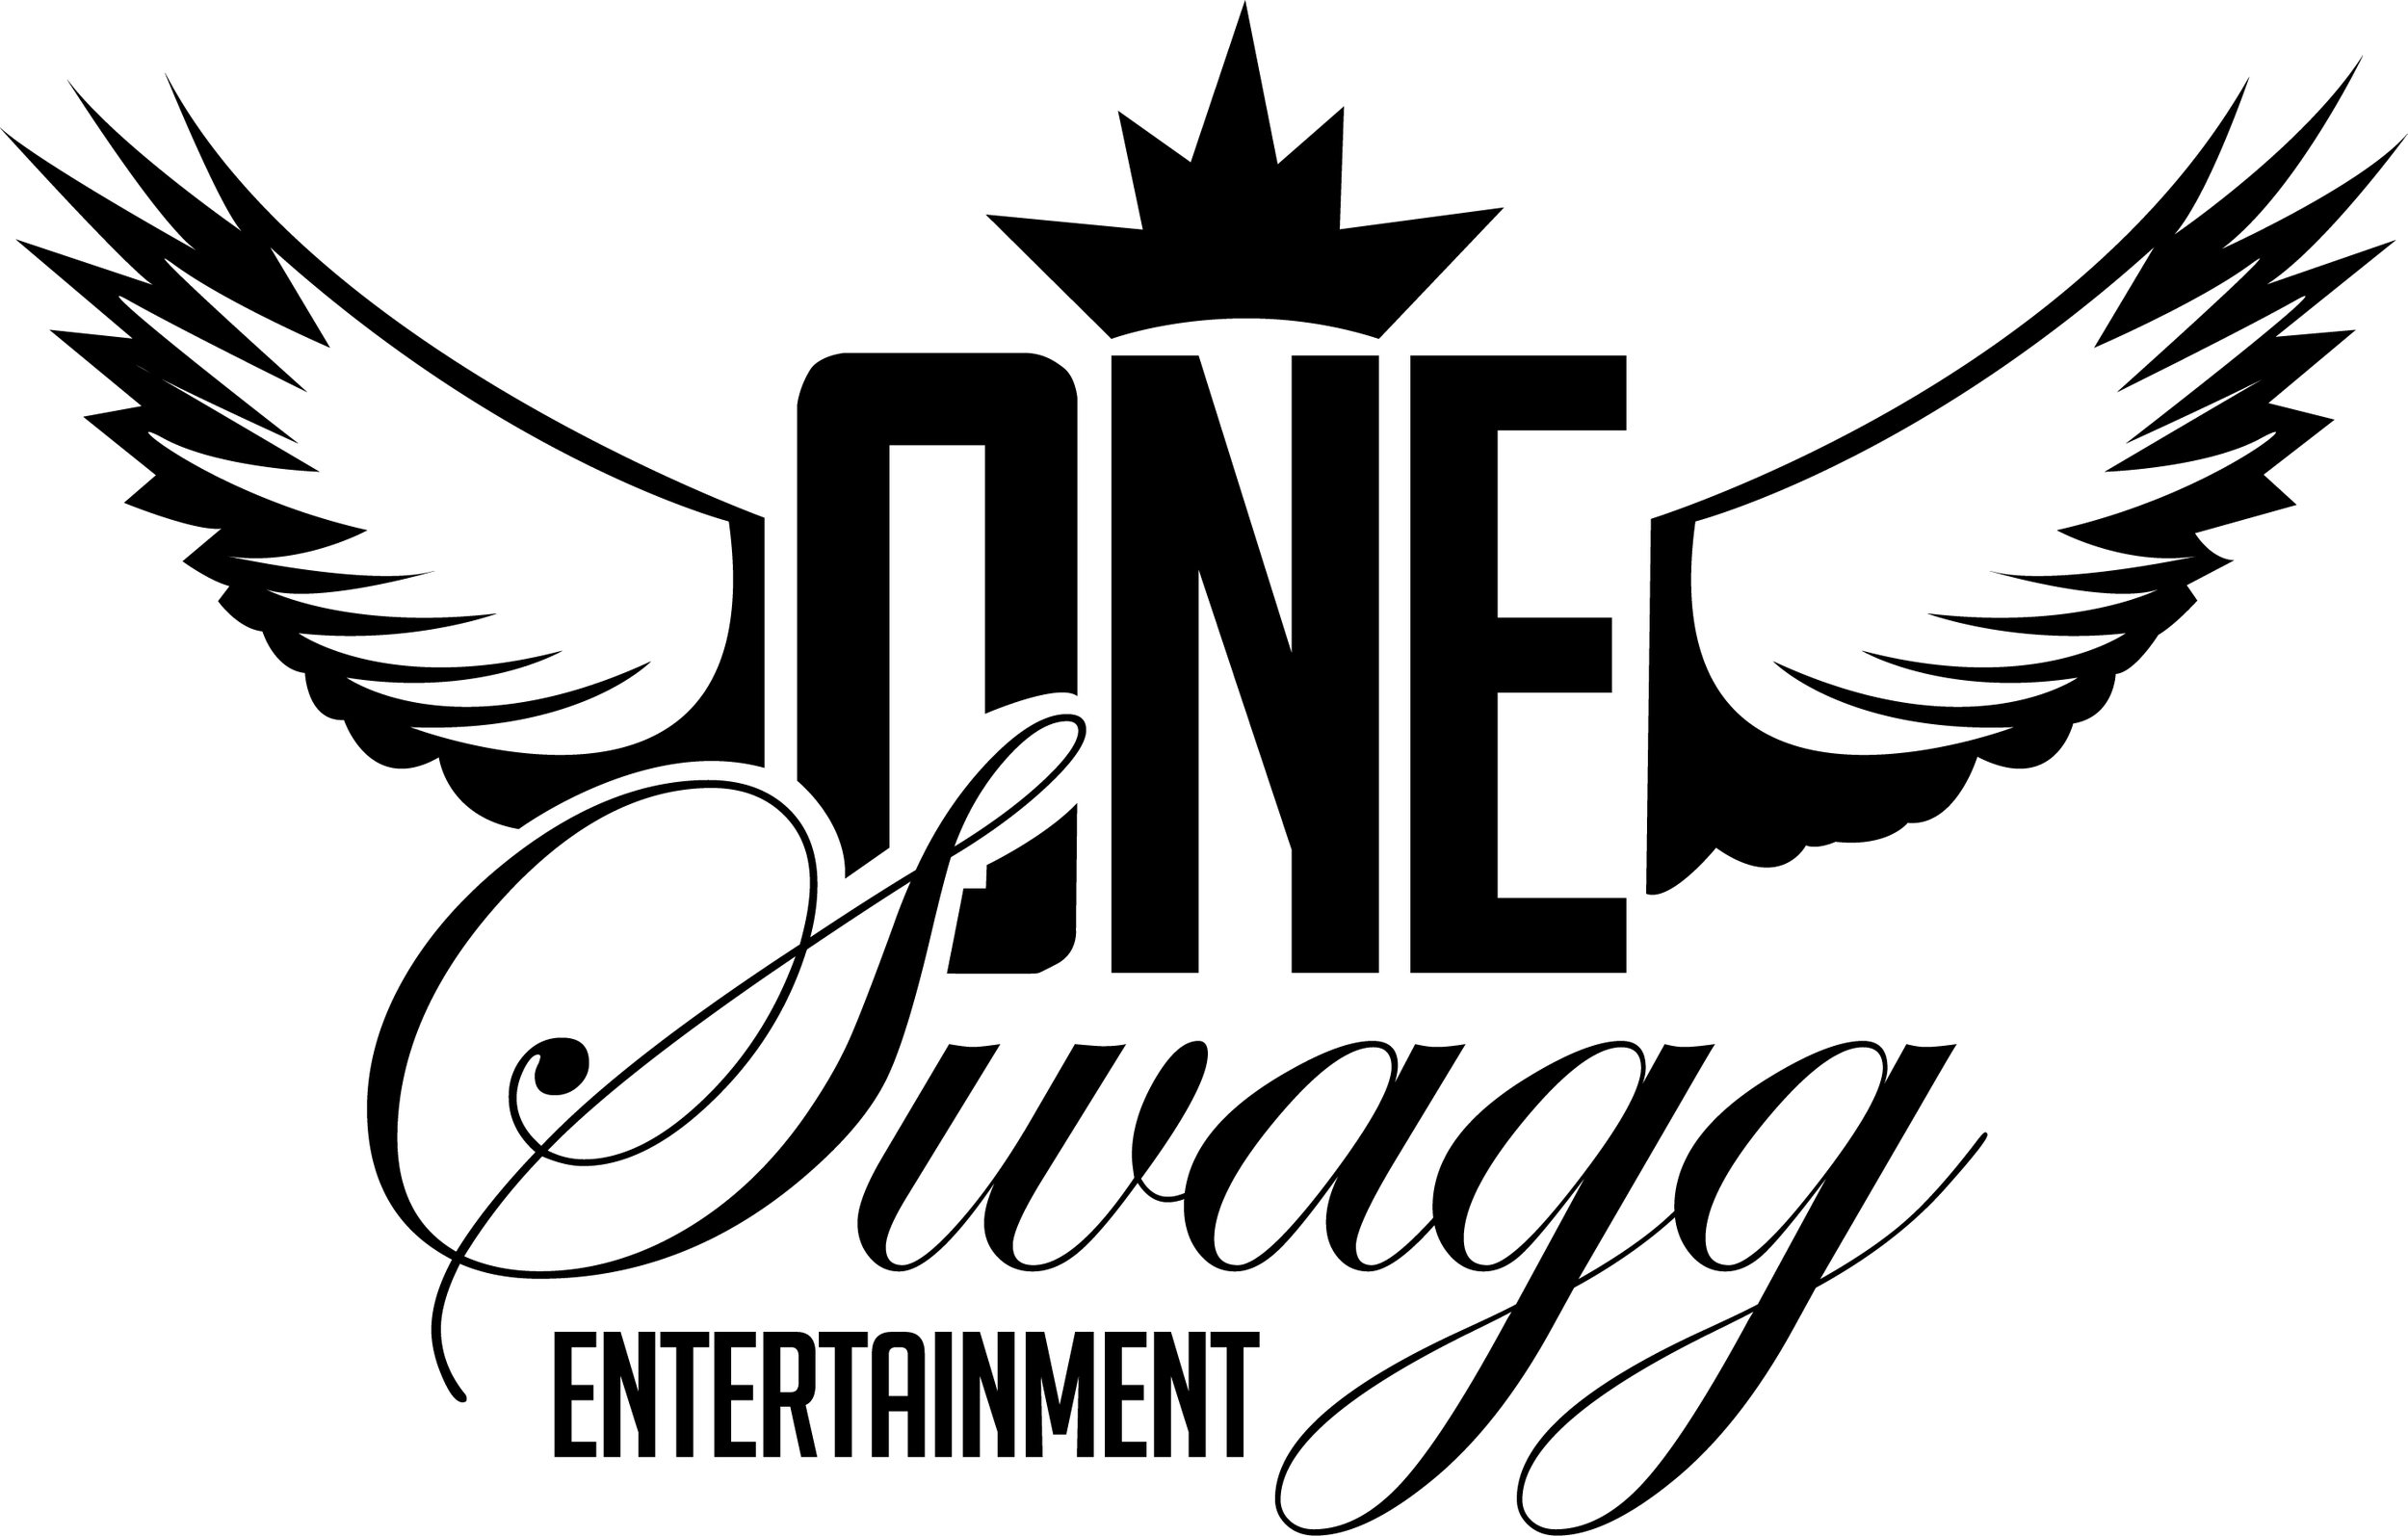 Copy of Oneswagg Ent. Logo update